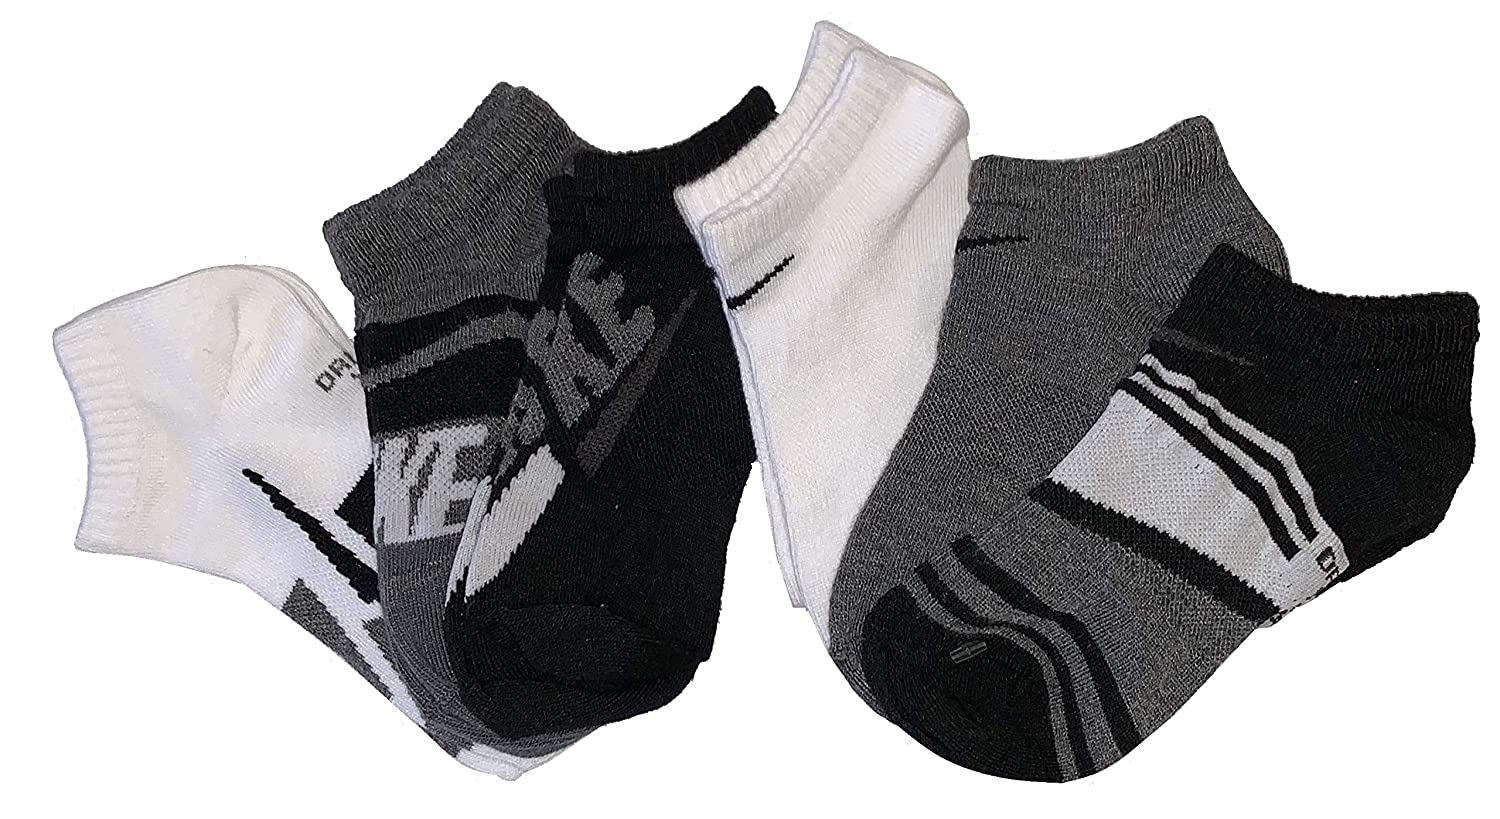 380e4493f793 Nike Kids Young Athletes No Show Socks 6 Pairs Active Hoodies